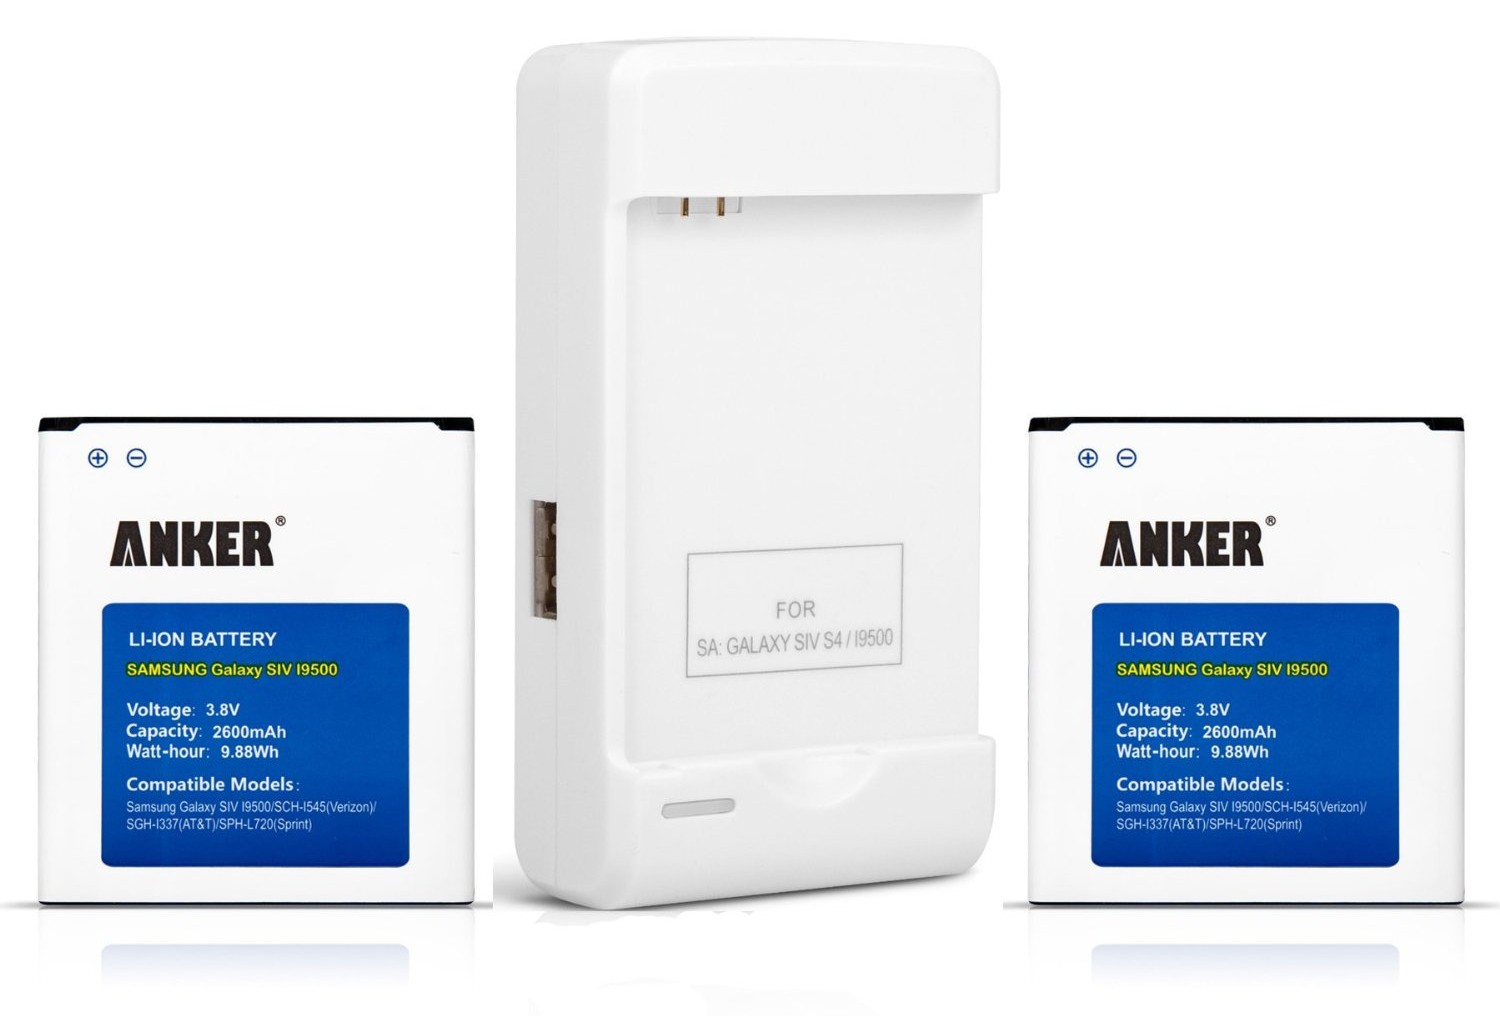 Review: Samsung External Charger and 2 replacement batteries from Anker